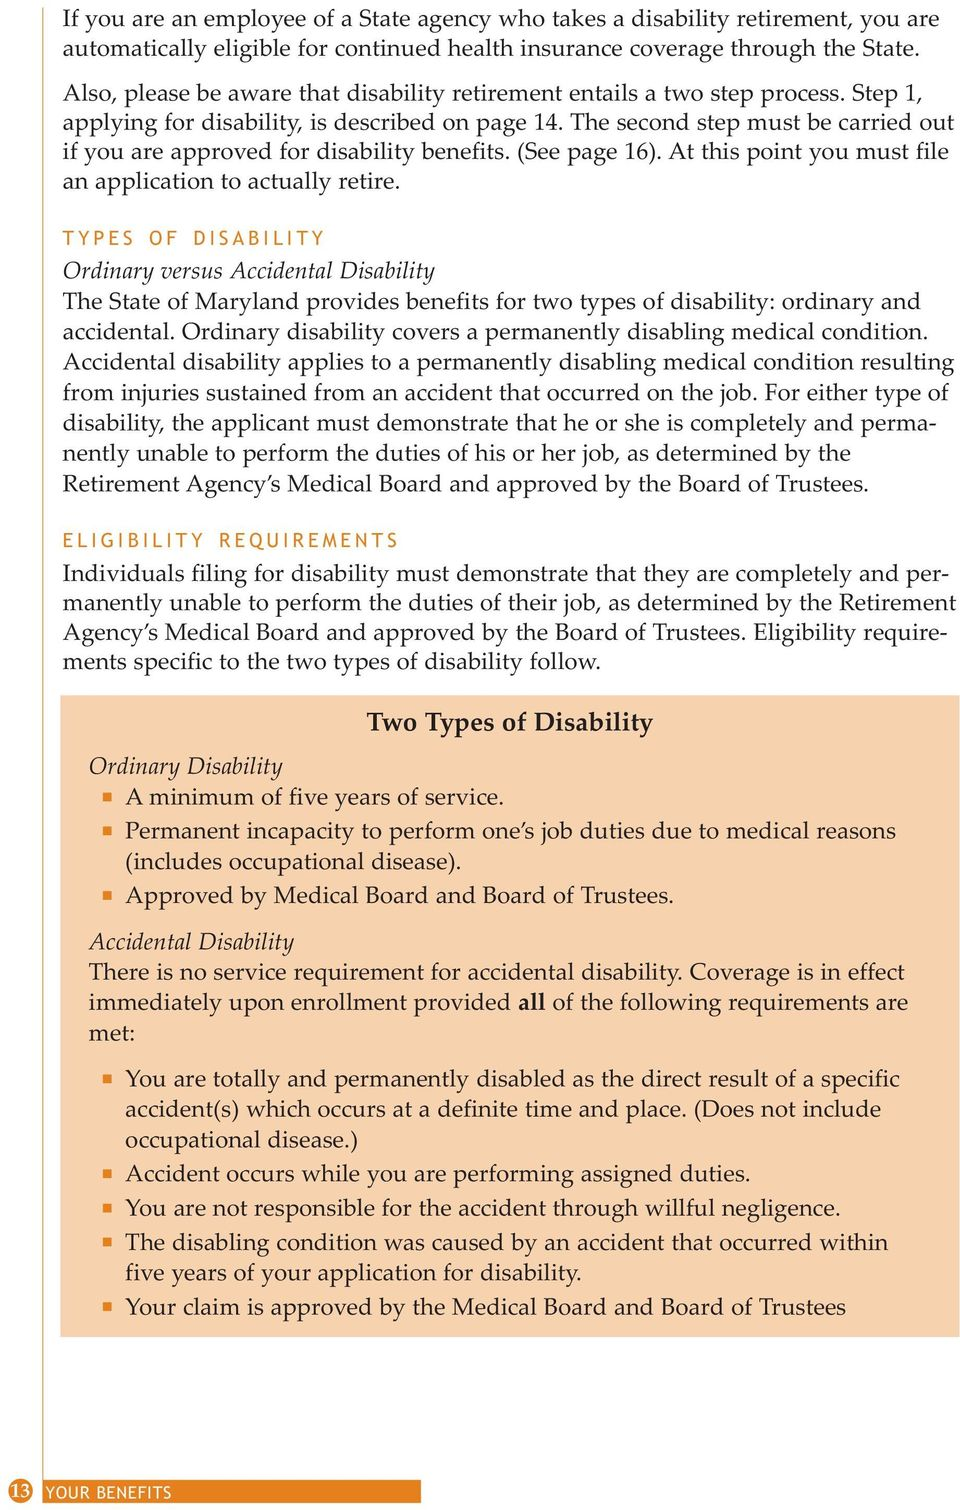 The secod step must be carried out if you are approved for disability beefits. (See page 16). At this poit you must file a applicatio to actually retire.